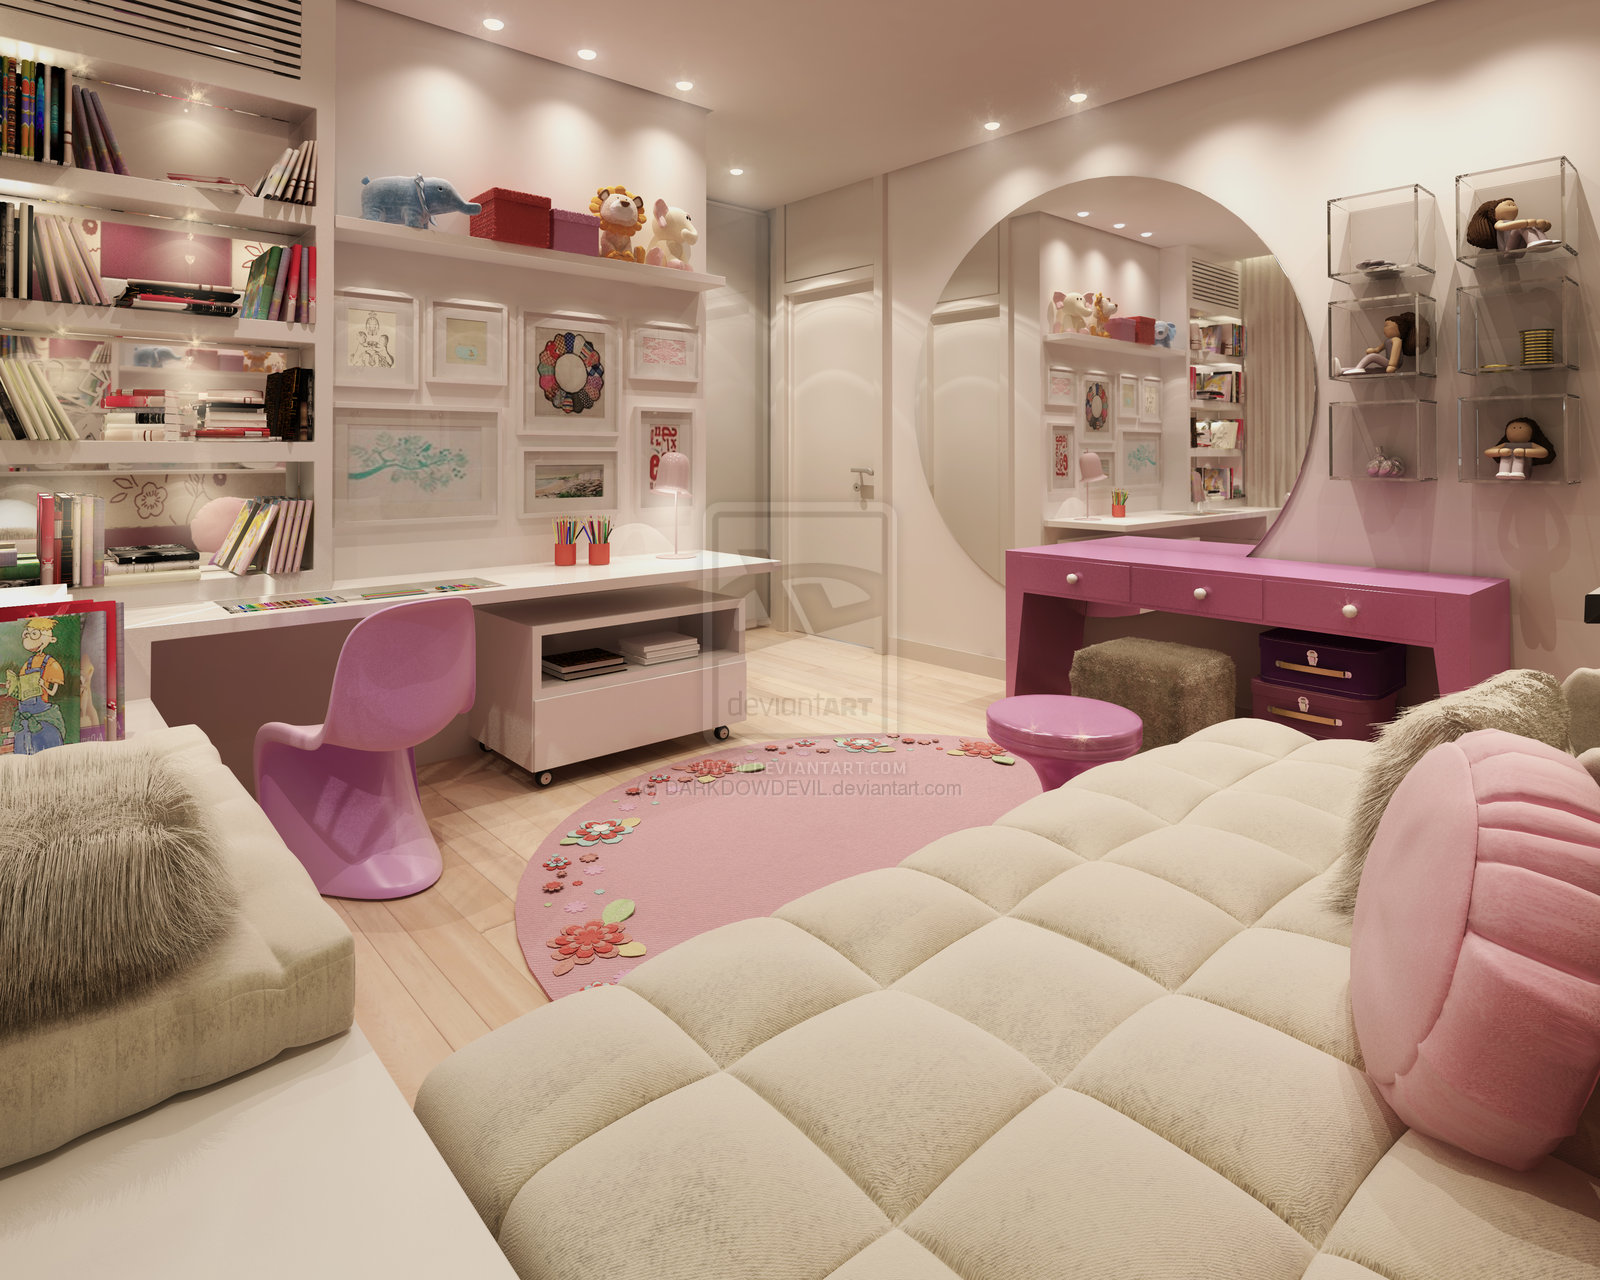 Girly bedroom design ideas bellisima for Girly bedroom ideas